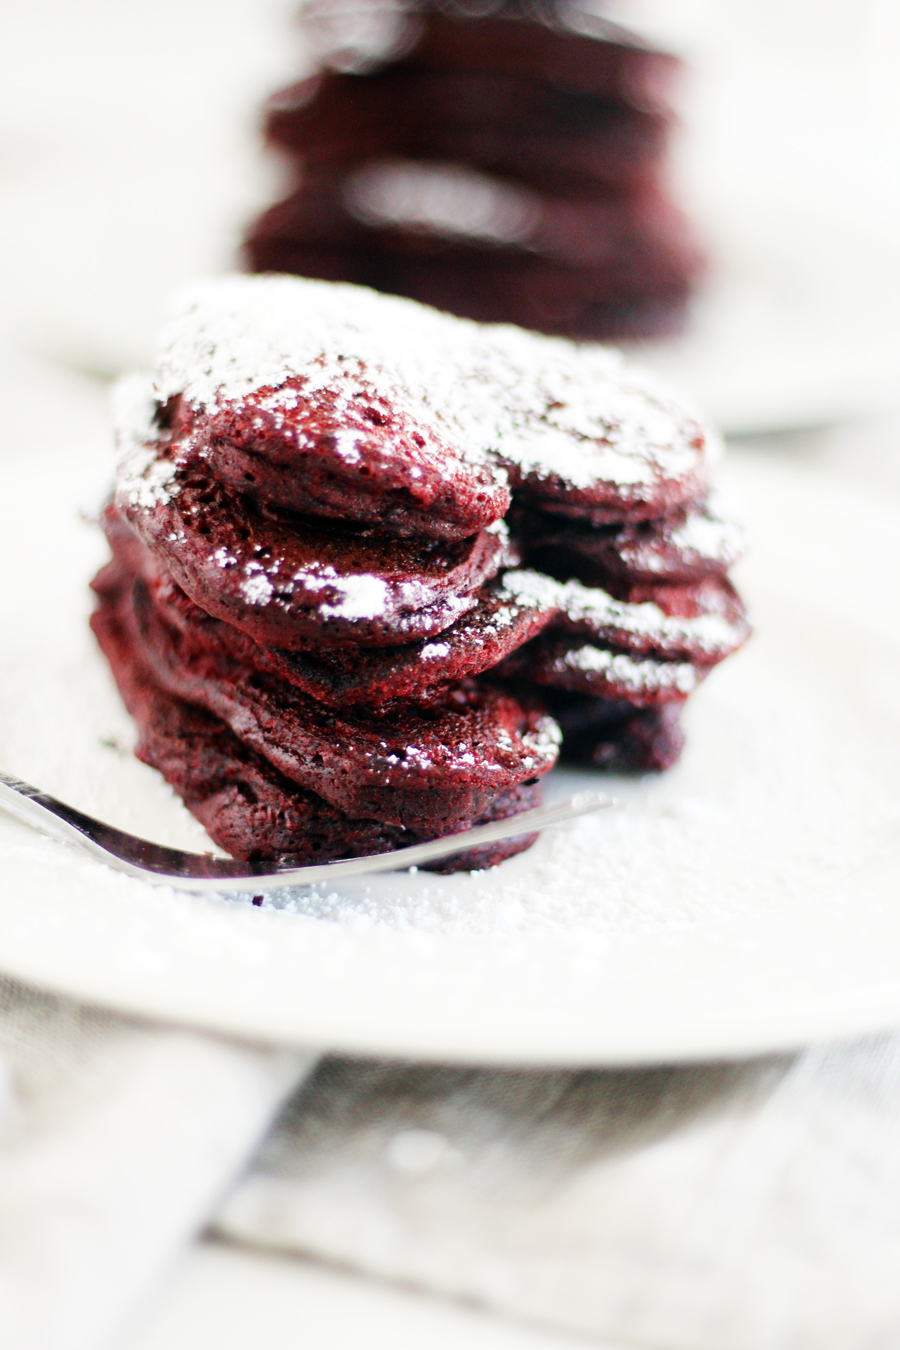 A stack of red velvet heart-shaped pancakes on a white plate, dusted with powdered sugar